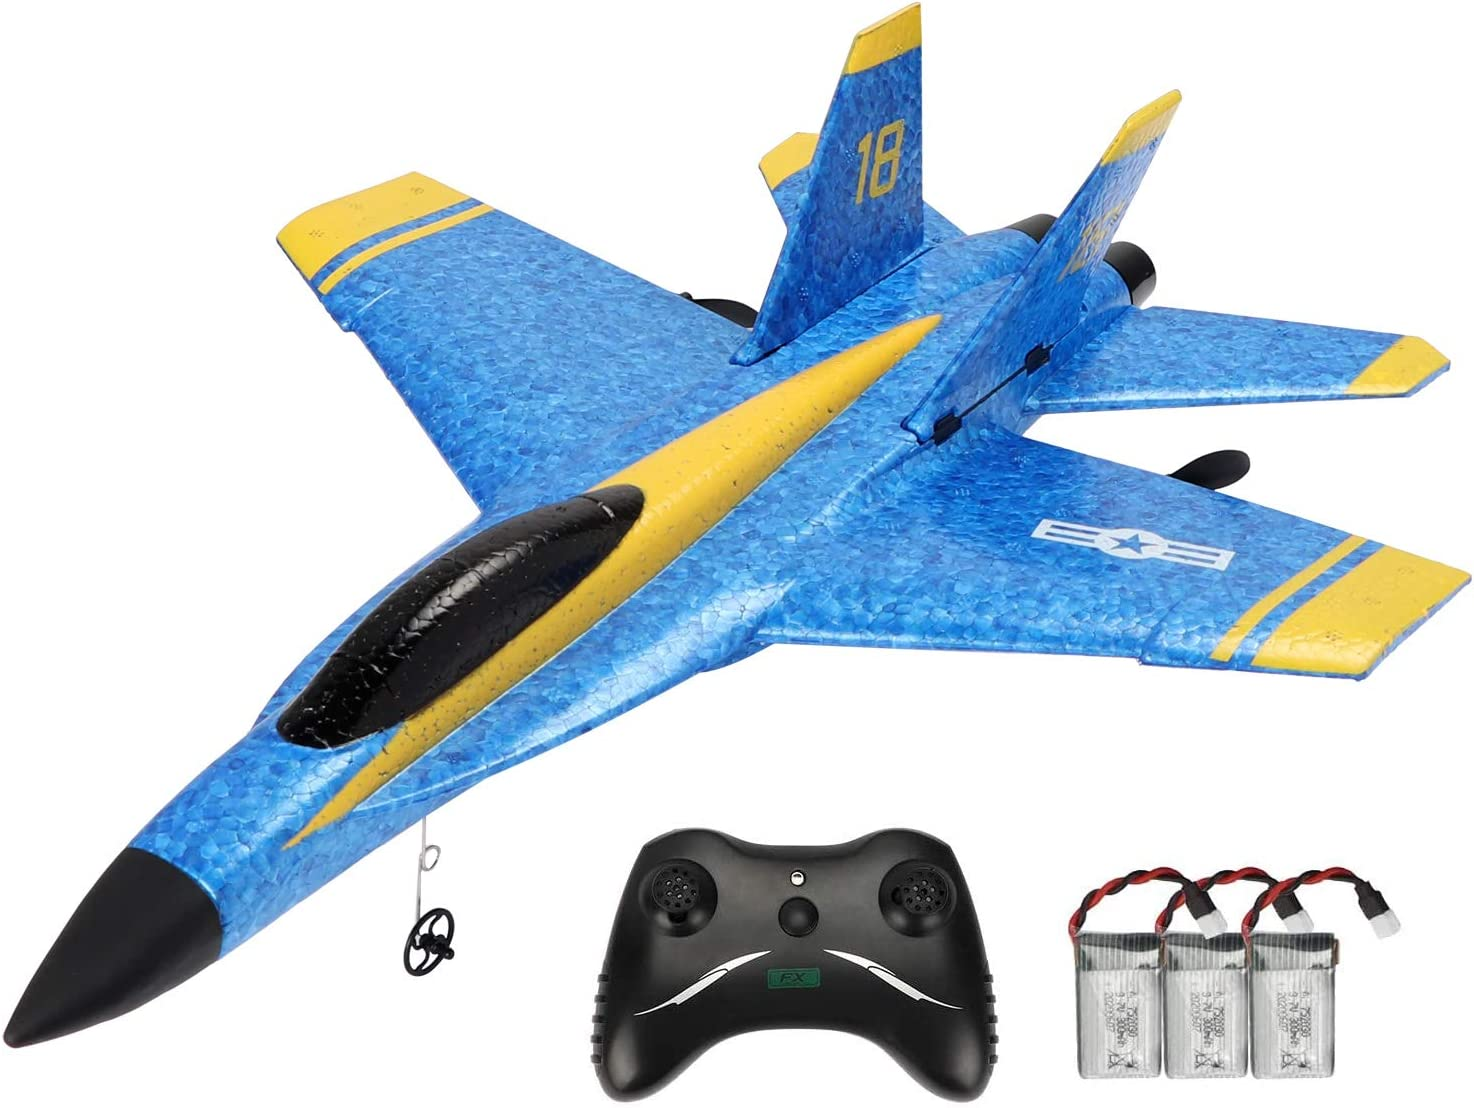 Techway Rc Plane 2 Channel Remote Control Airplane Ready to Fly Rc Planes for Kids Beginners and Adults,RTF RC Gliding Aircraft Model Easy /& Ready to Fly with 3 Batteries